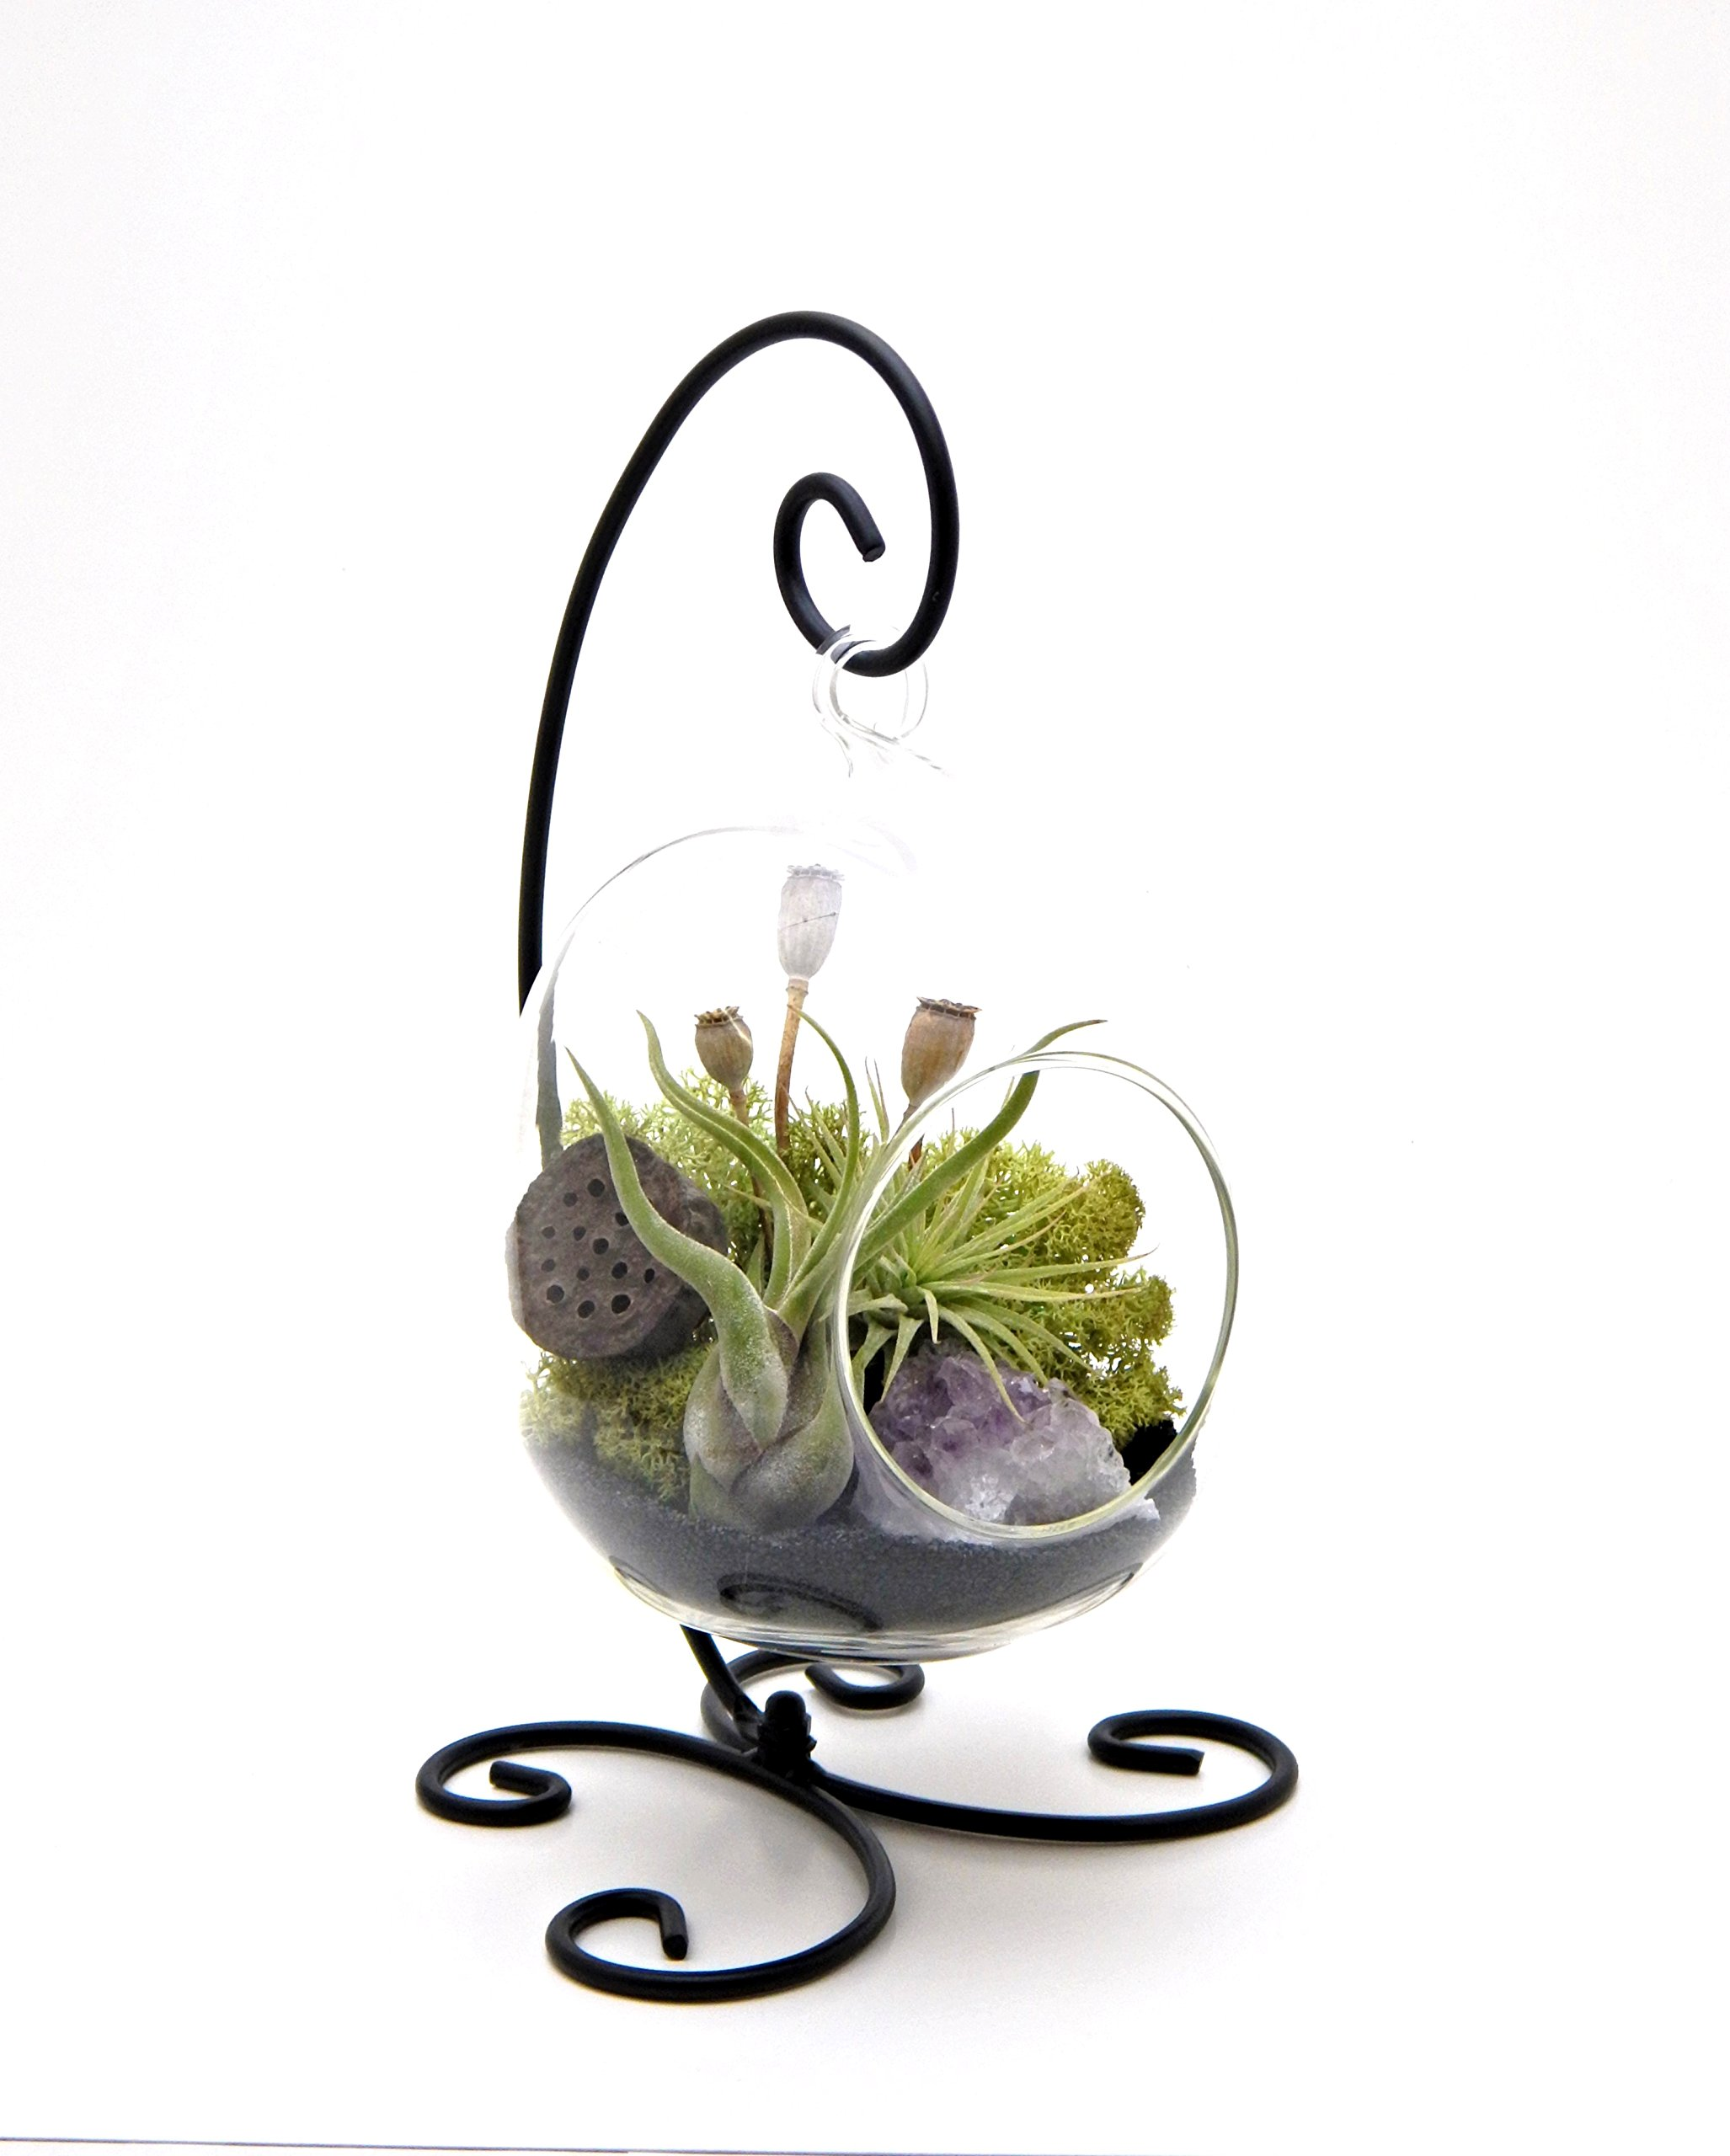 Bliss Gardens Air Plant Terrarium Kit with Amethyst / 6'' Oval Glass With Black Stand/Tillandsia Gift/Midnight Forest by Bliss Gardens